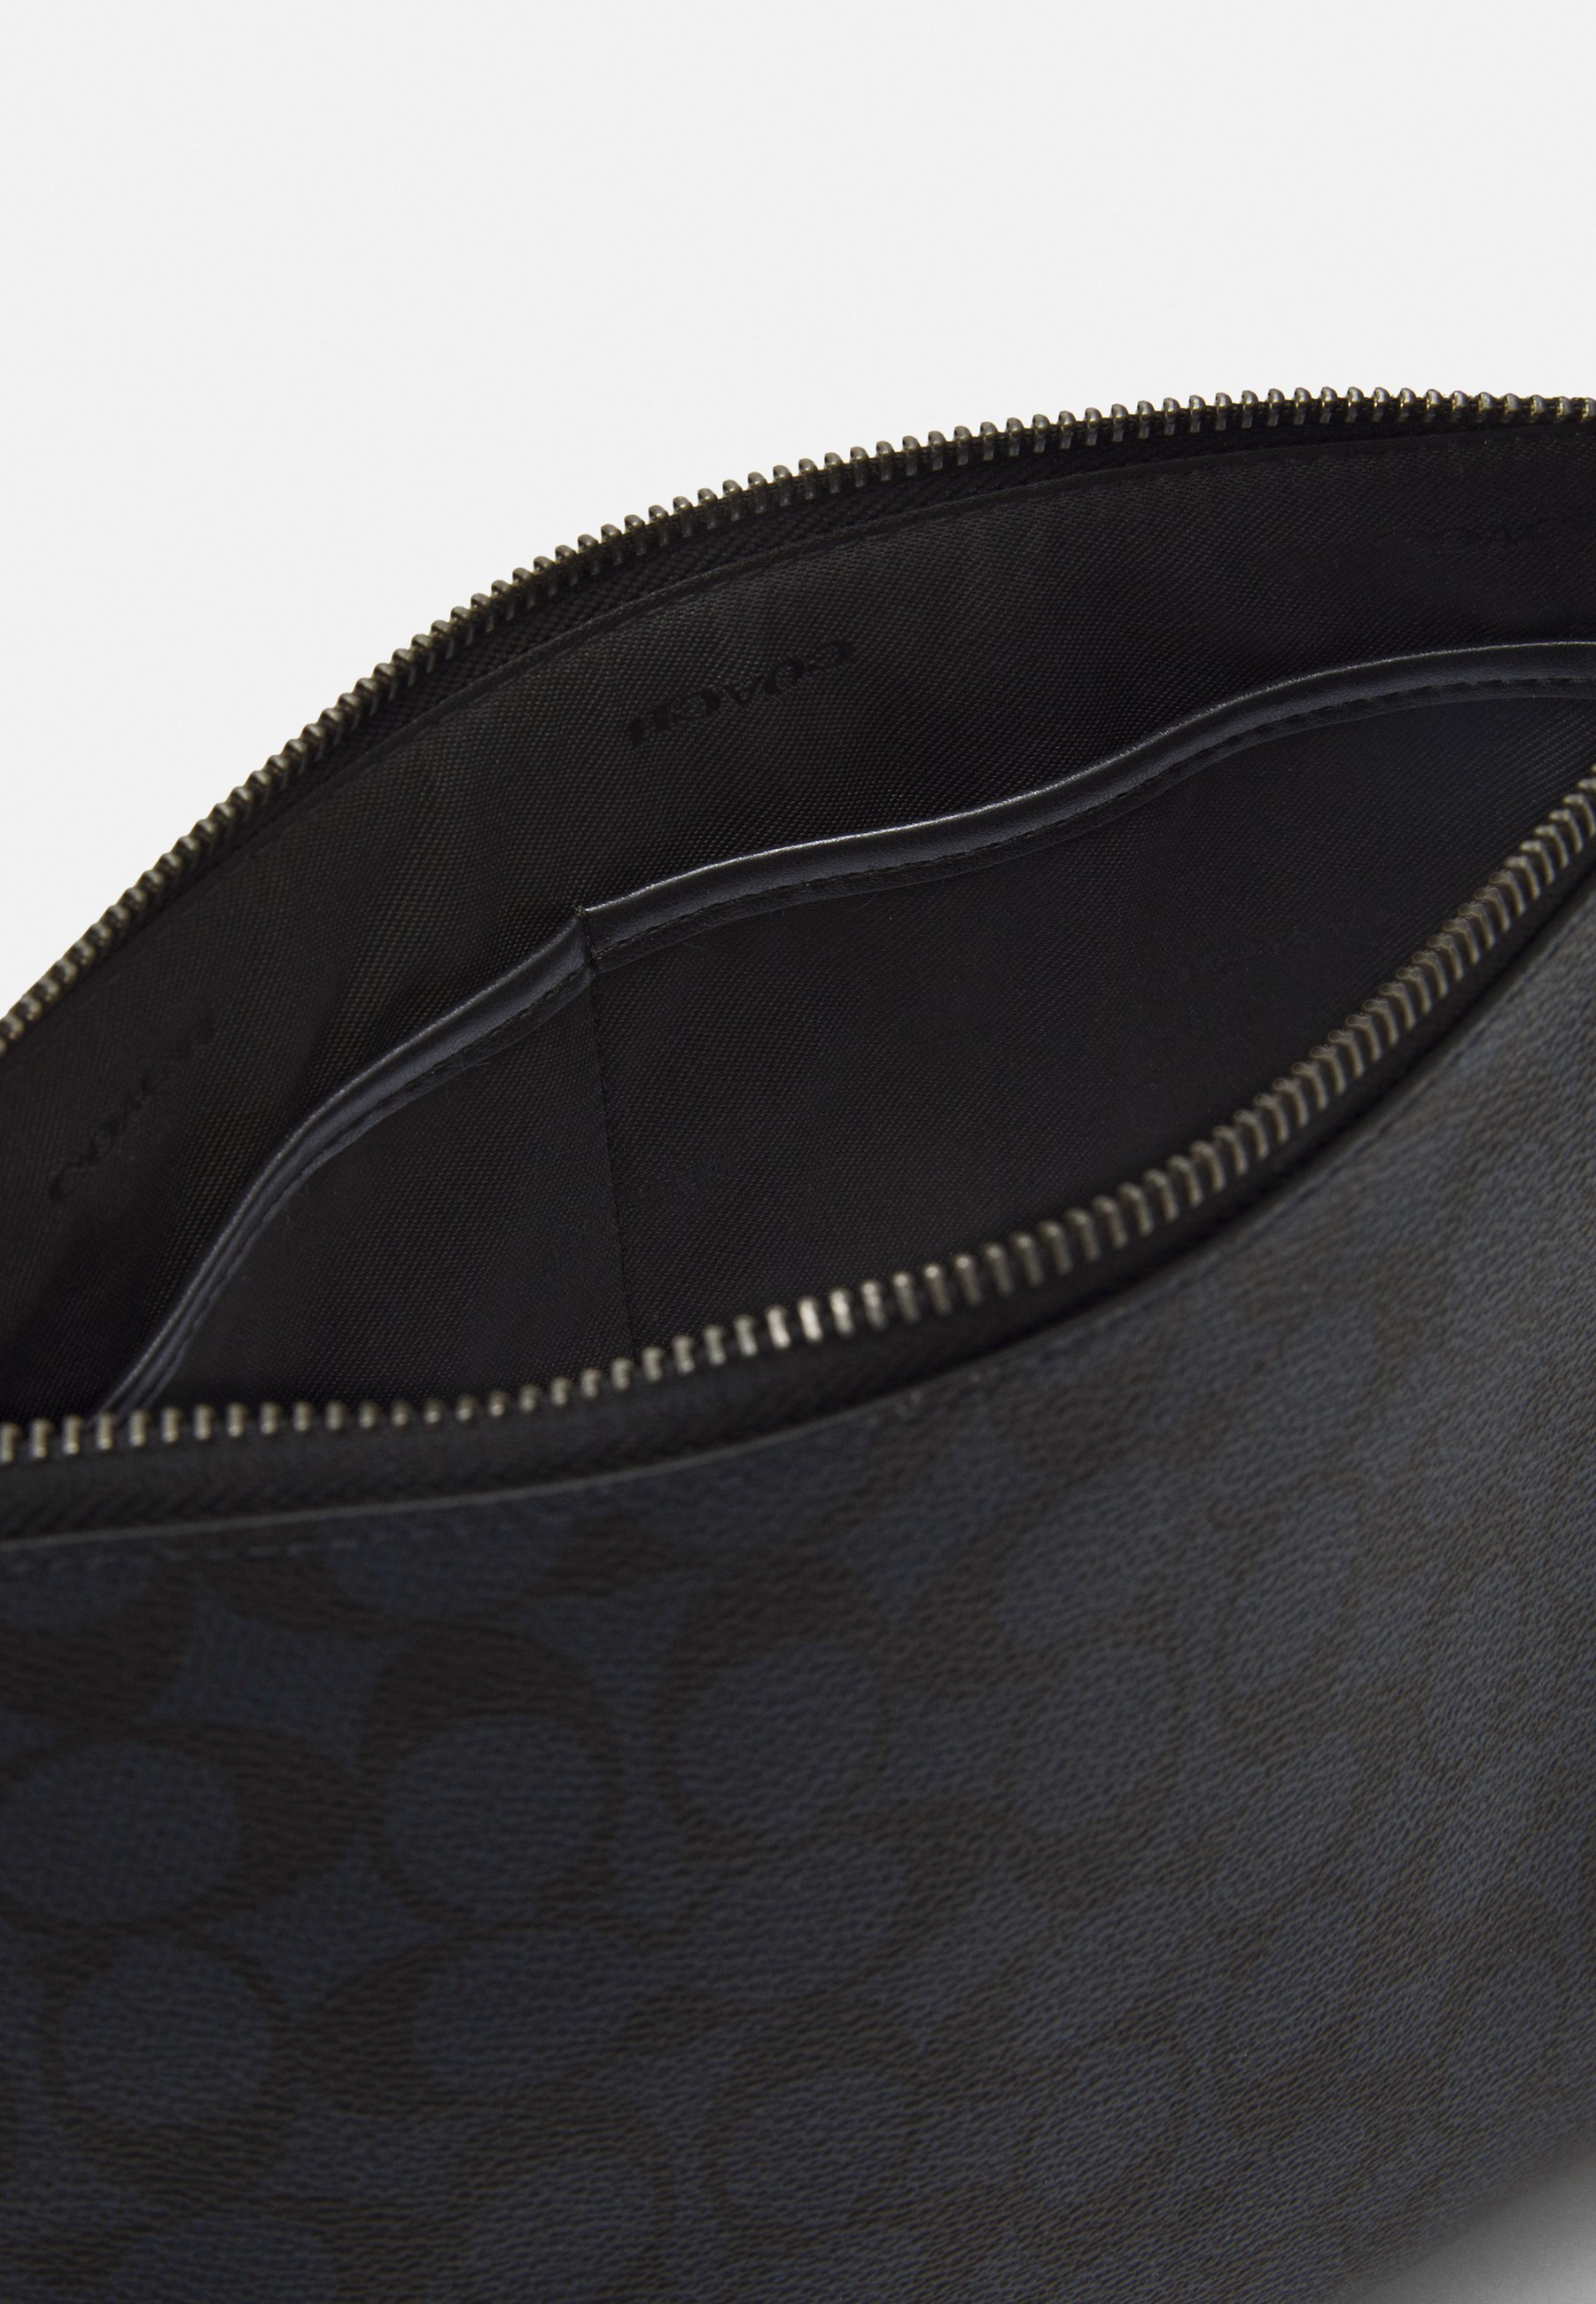 Coach ACADEMY POUCH IN SIGNATURE - Notebooktasche - midnight/dunkelblau - Herrentaschen i1fhj